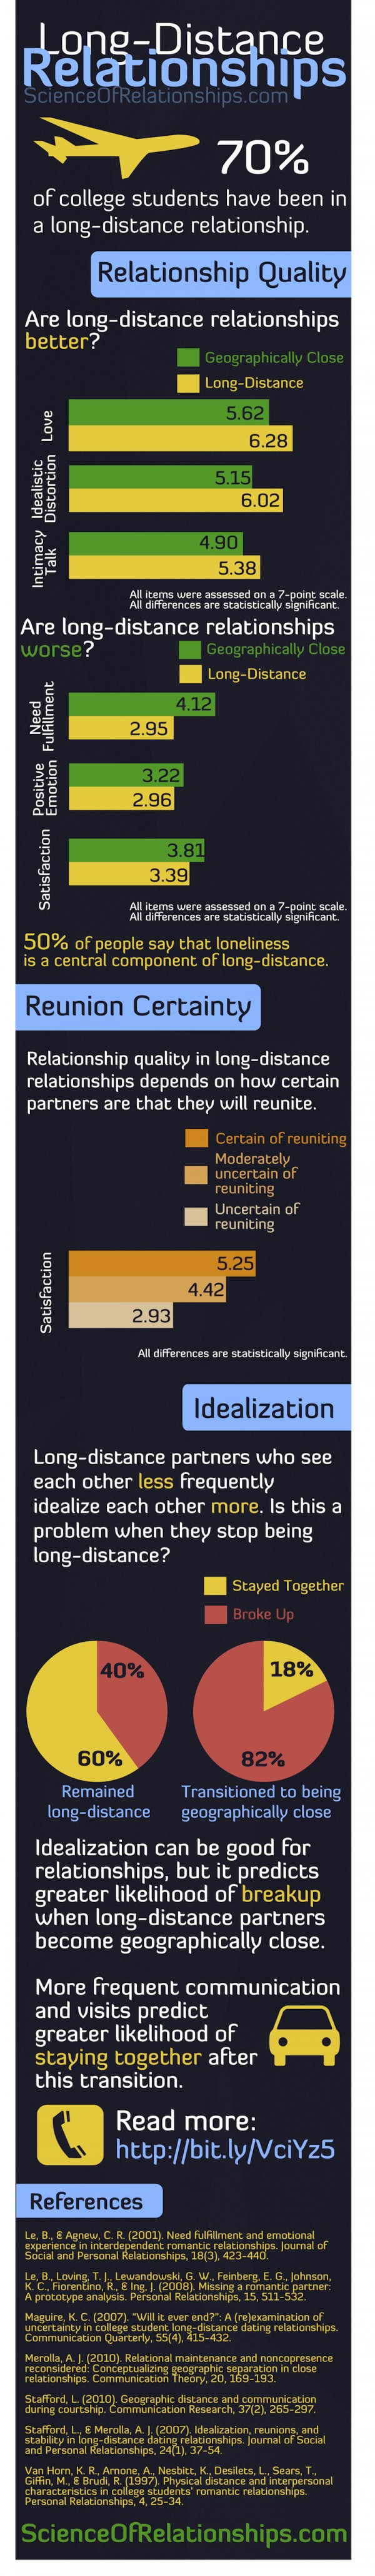 Science_of_Relationships_LDR_infographic